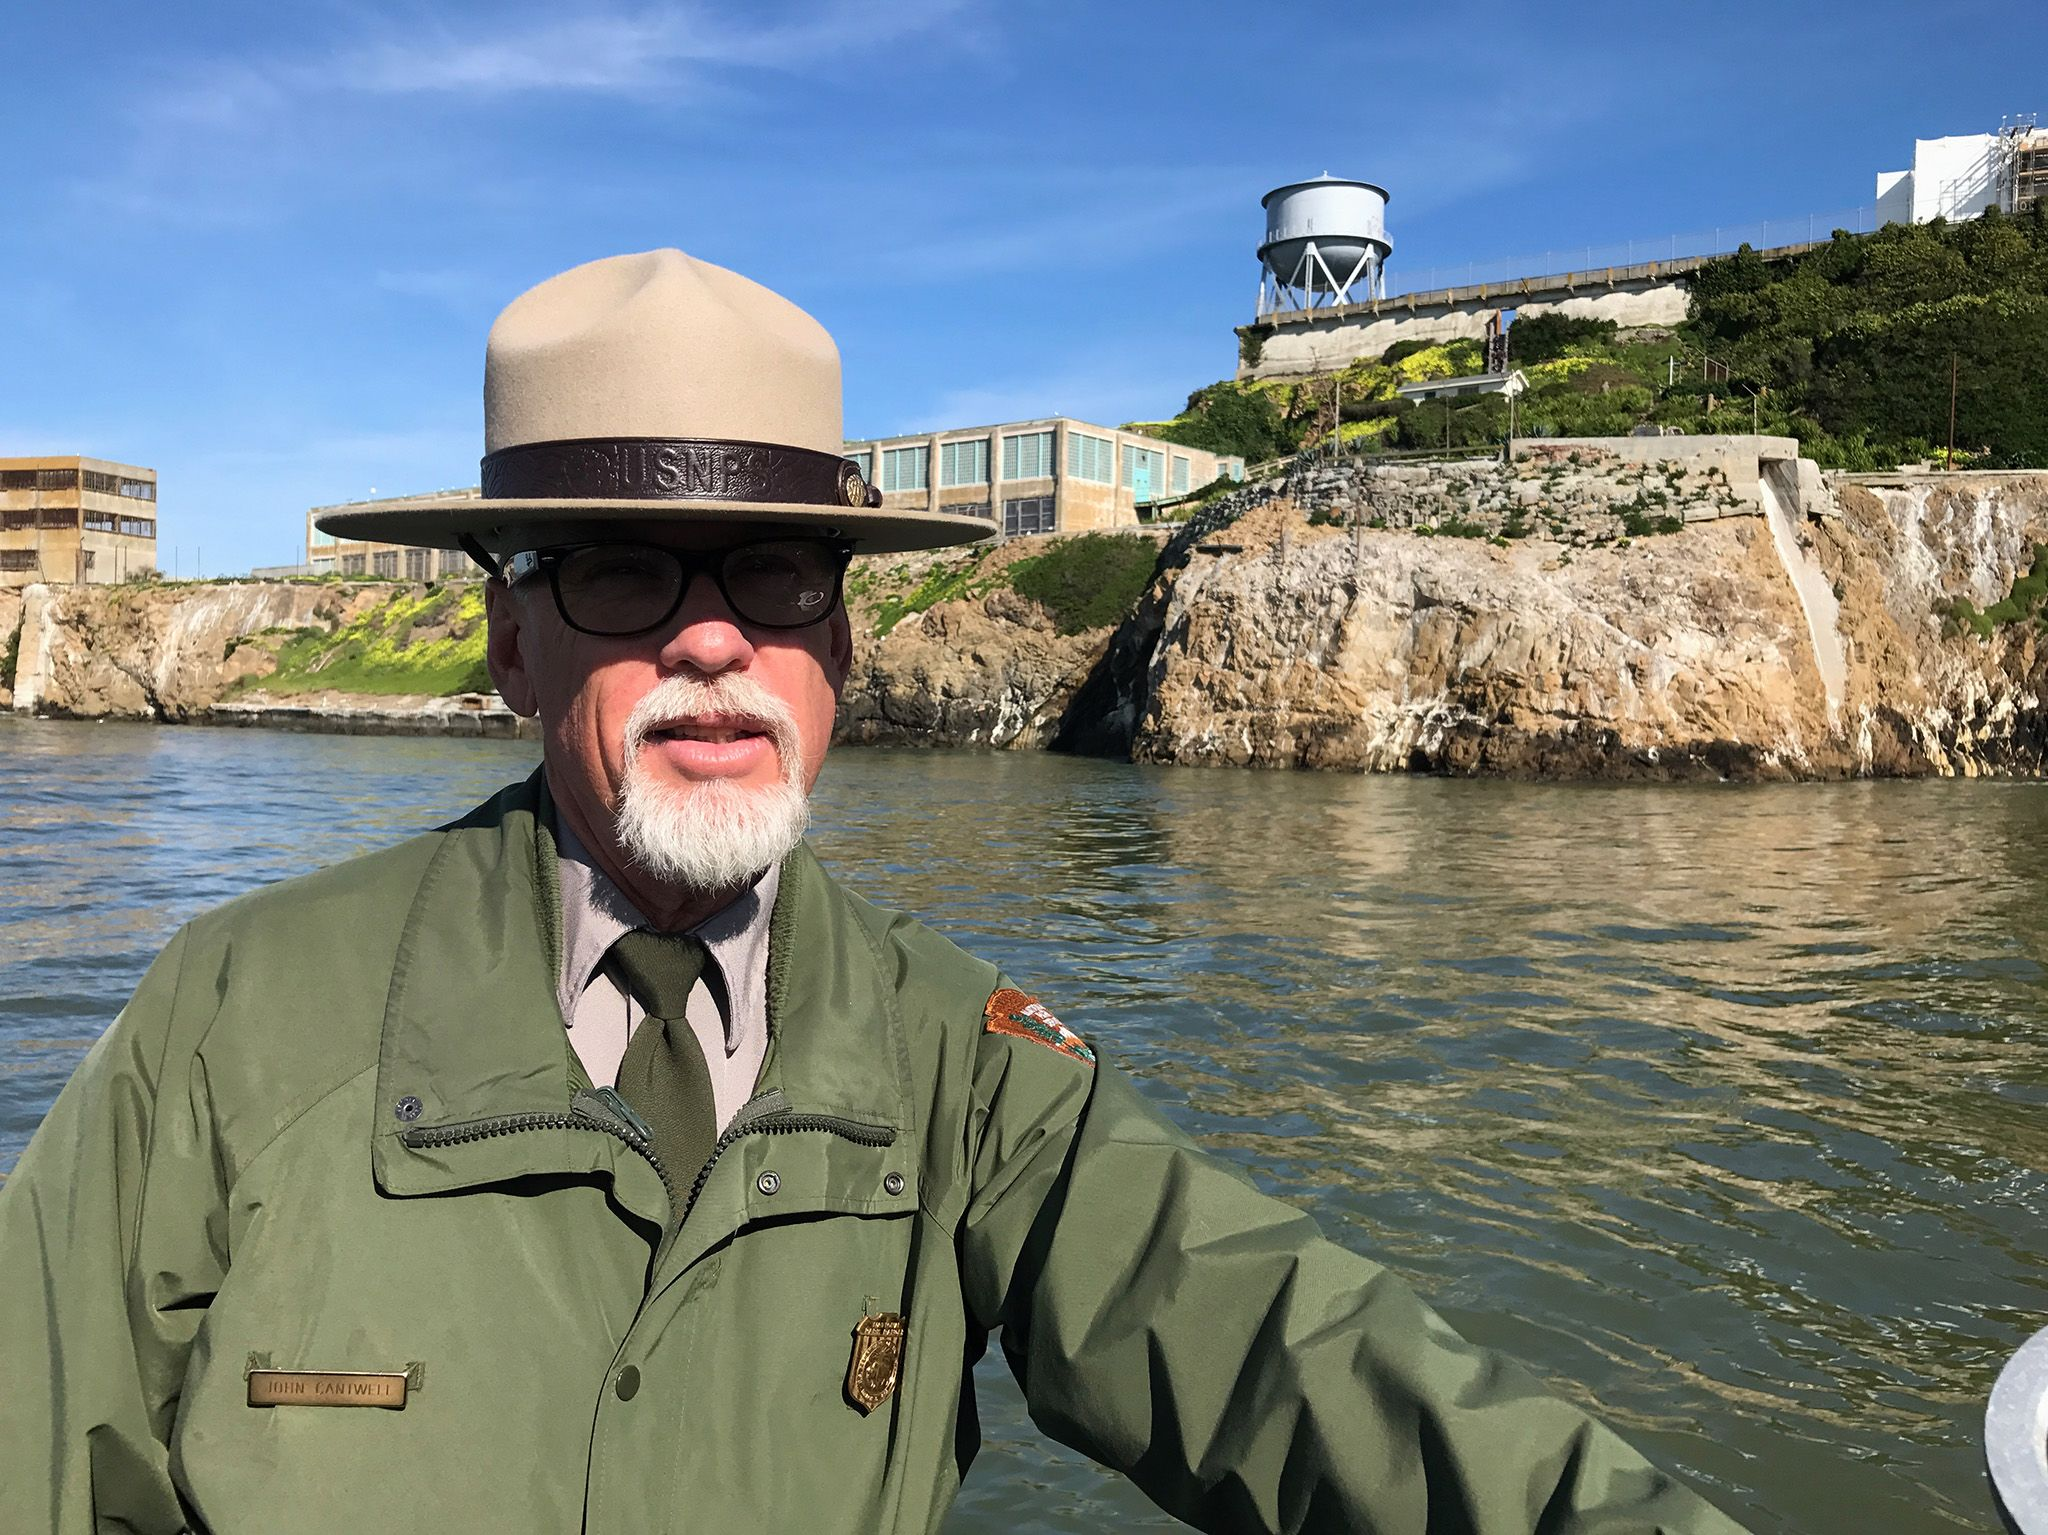 California:  Ranger John Cantwell, National Parks Service. This image is from Drain Alcatraz. [Photo of the day - December 2017]